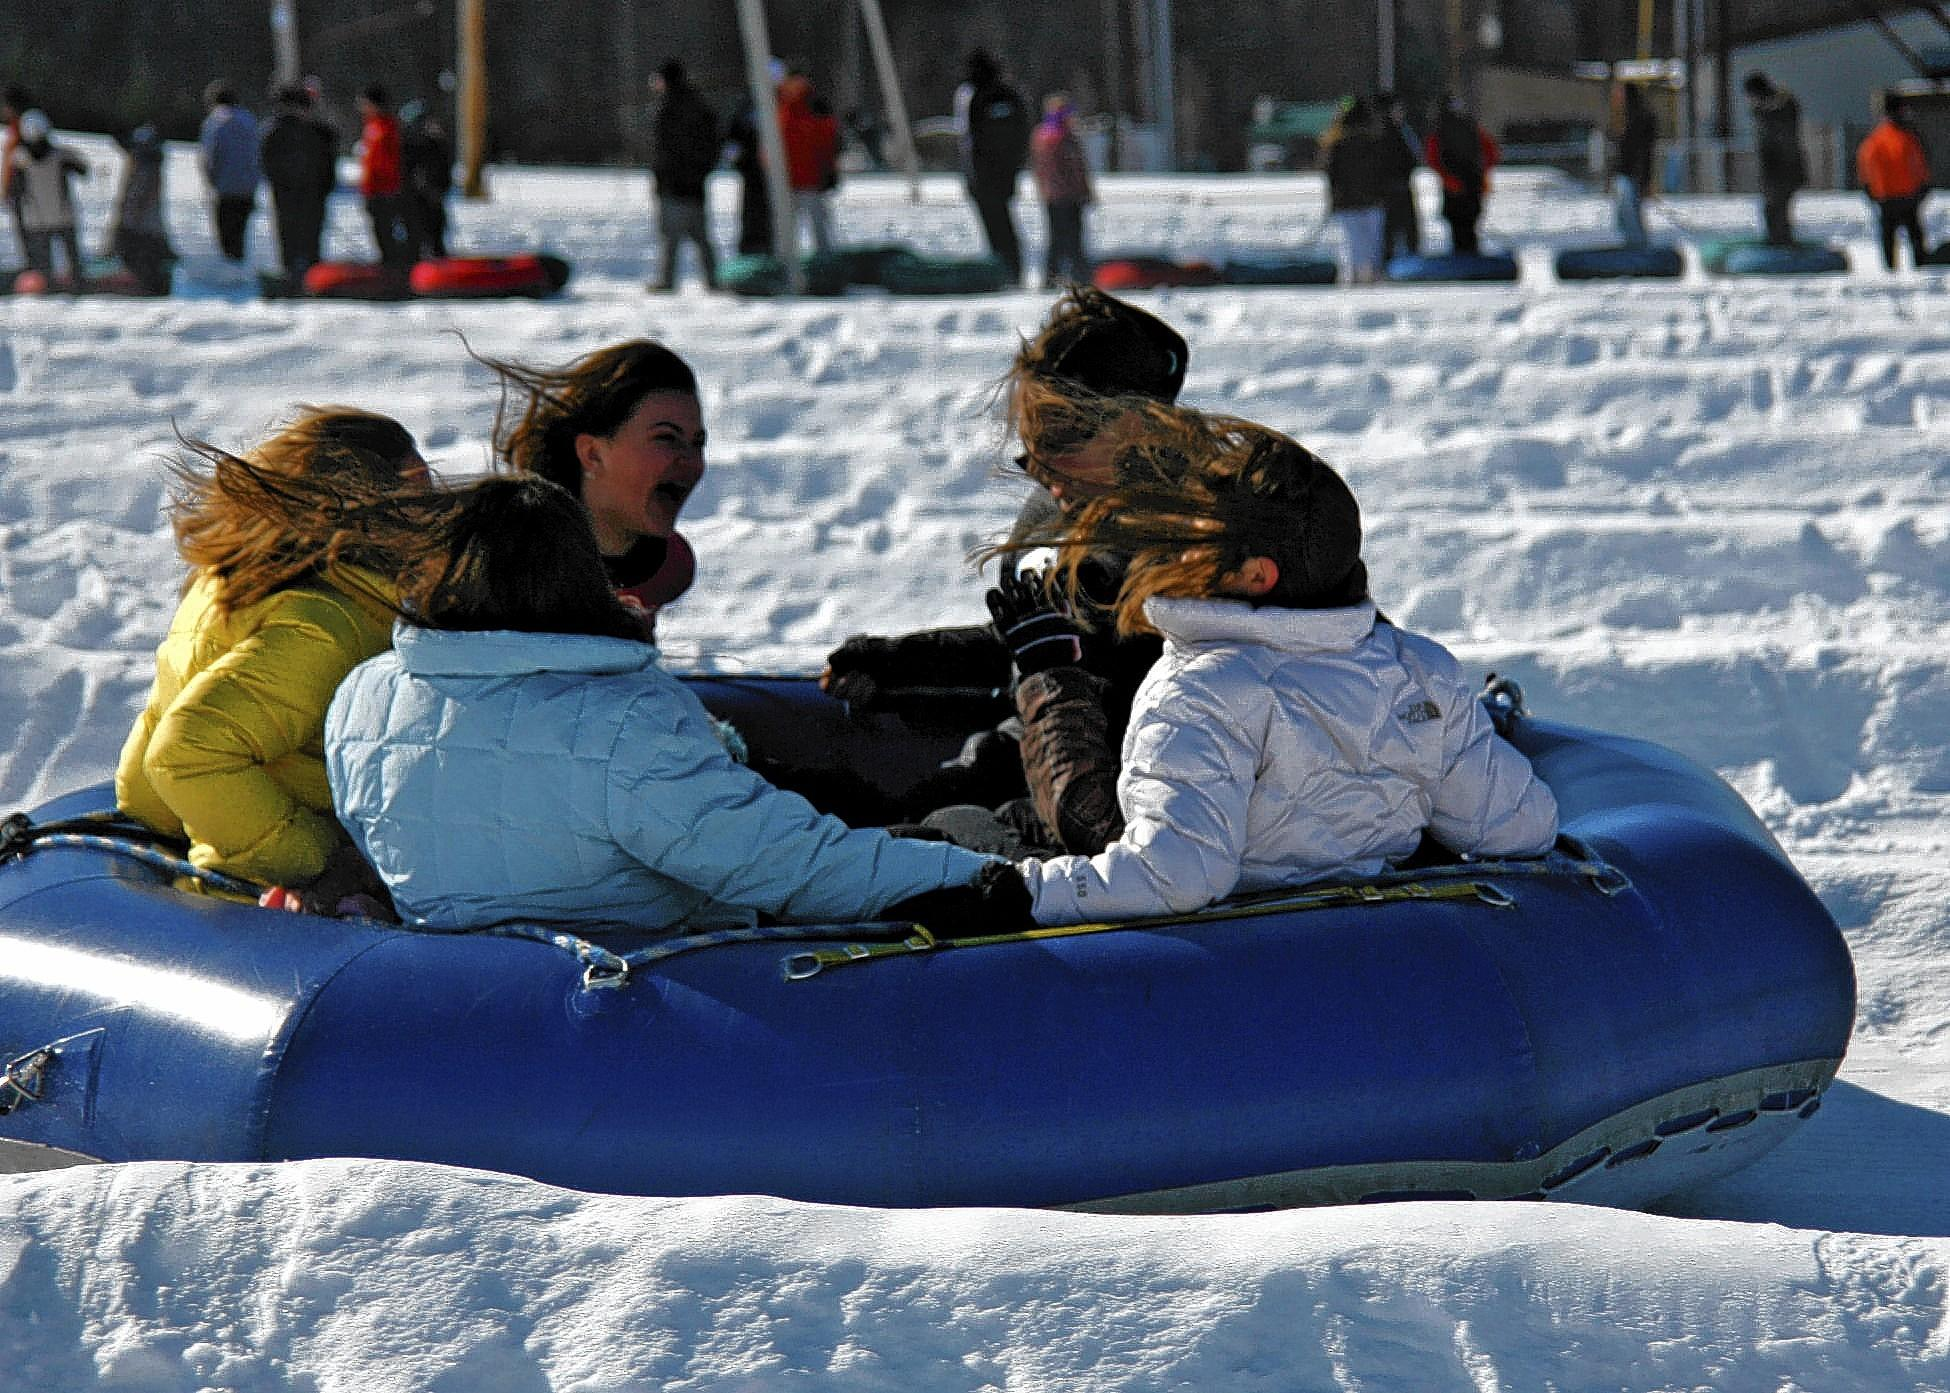 snow tubing in the poconos - tribunedigital-mcall